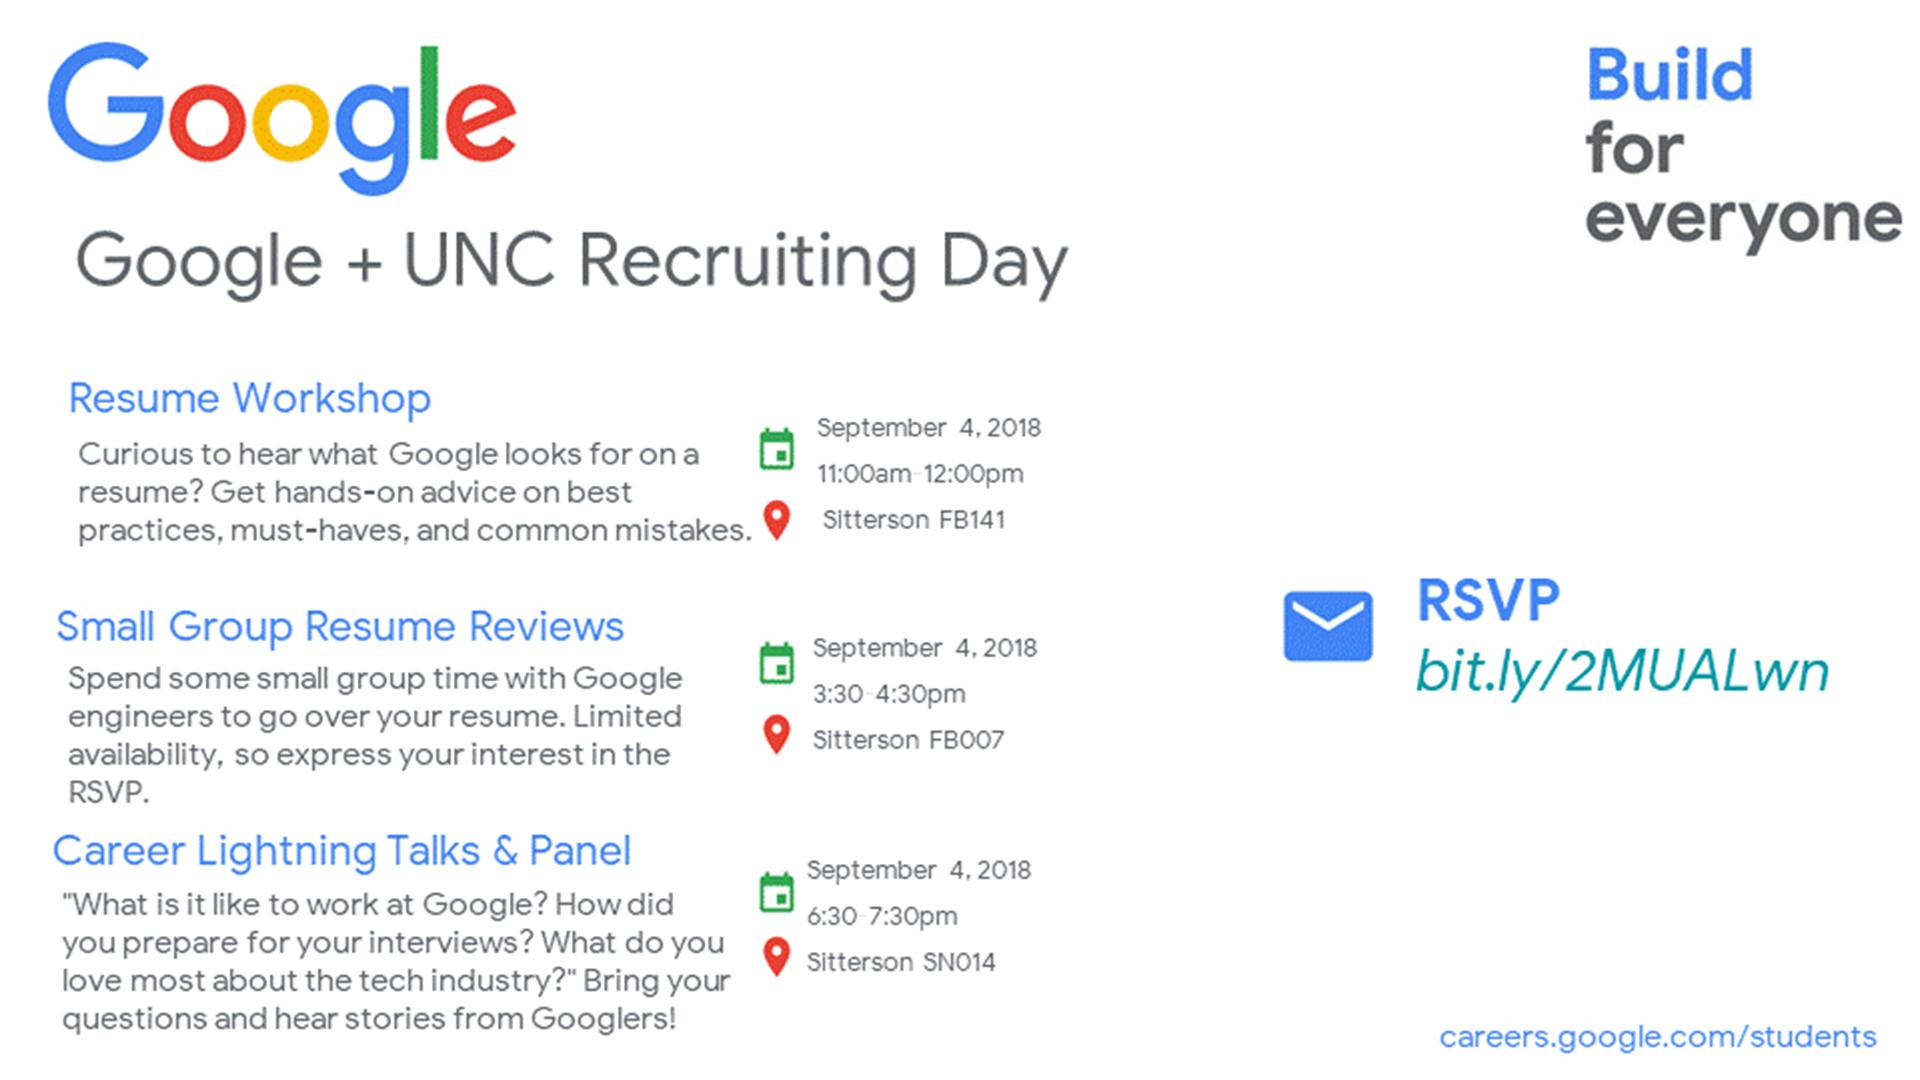 Google Unc Recruiting Day Digital Signage Student Affairs